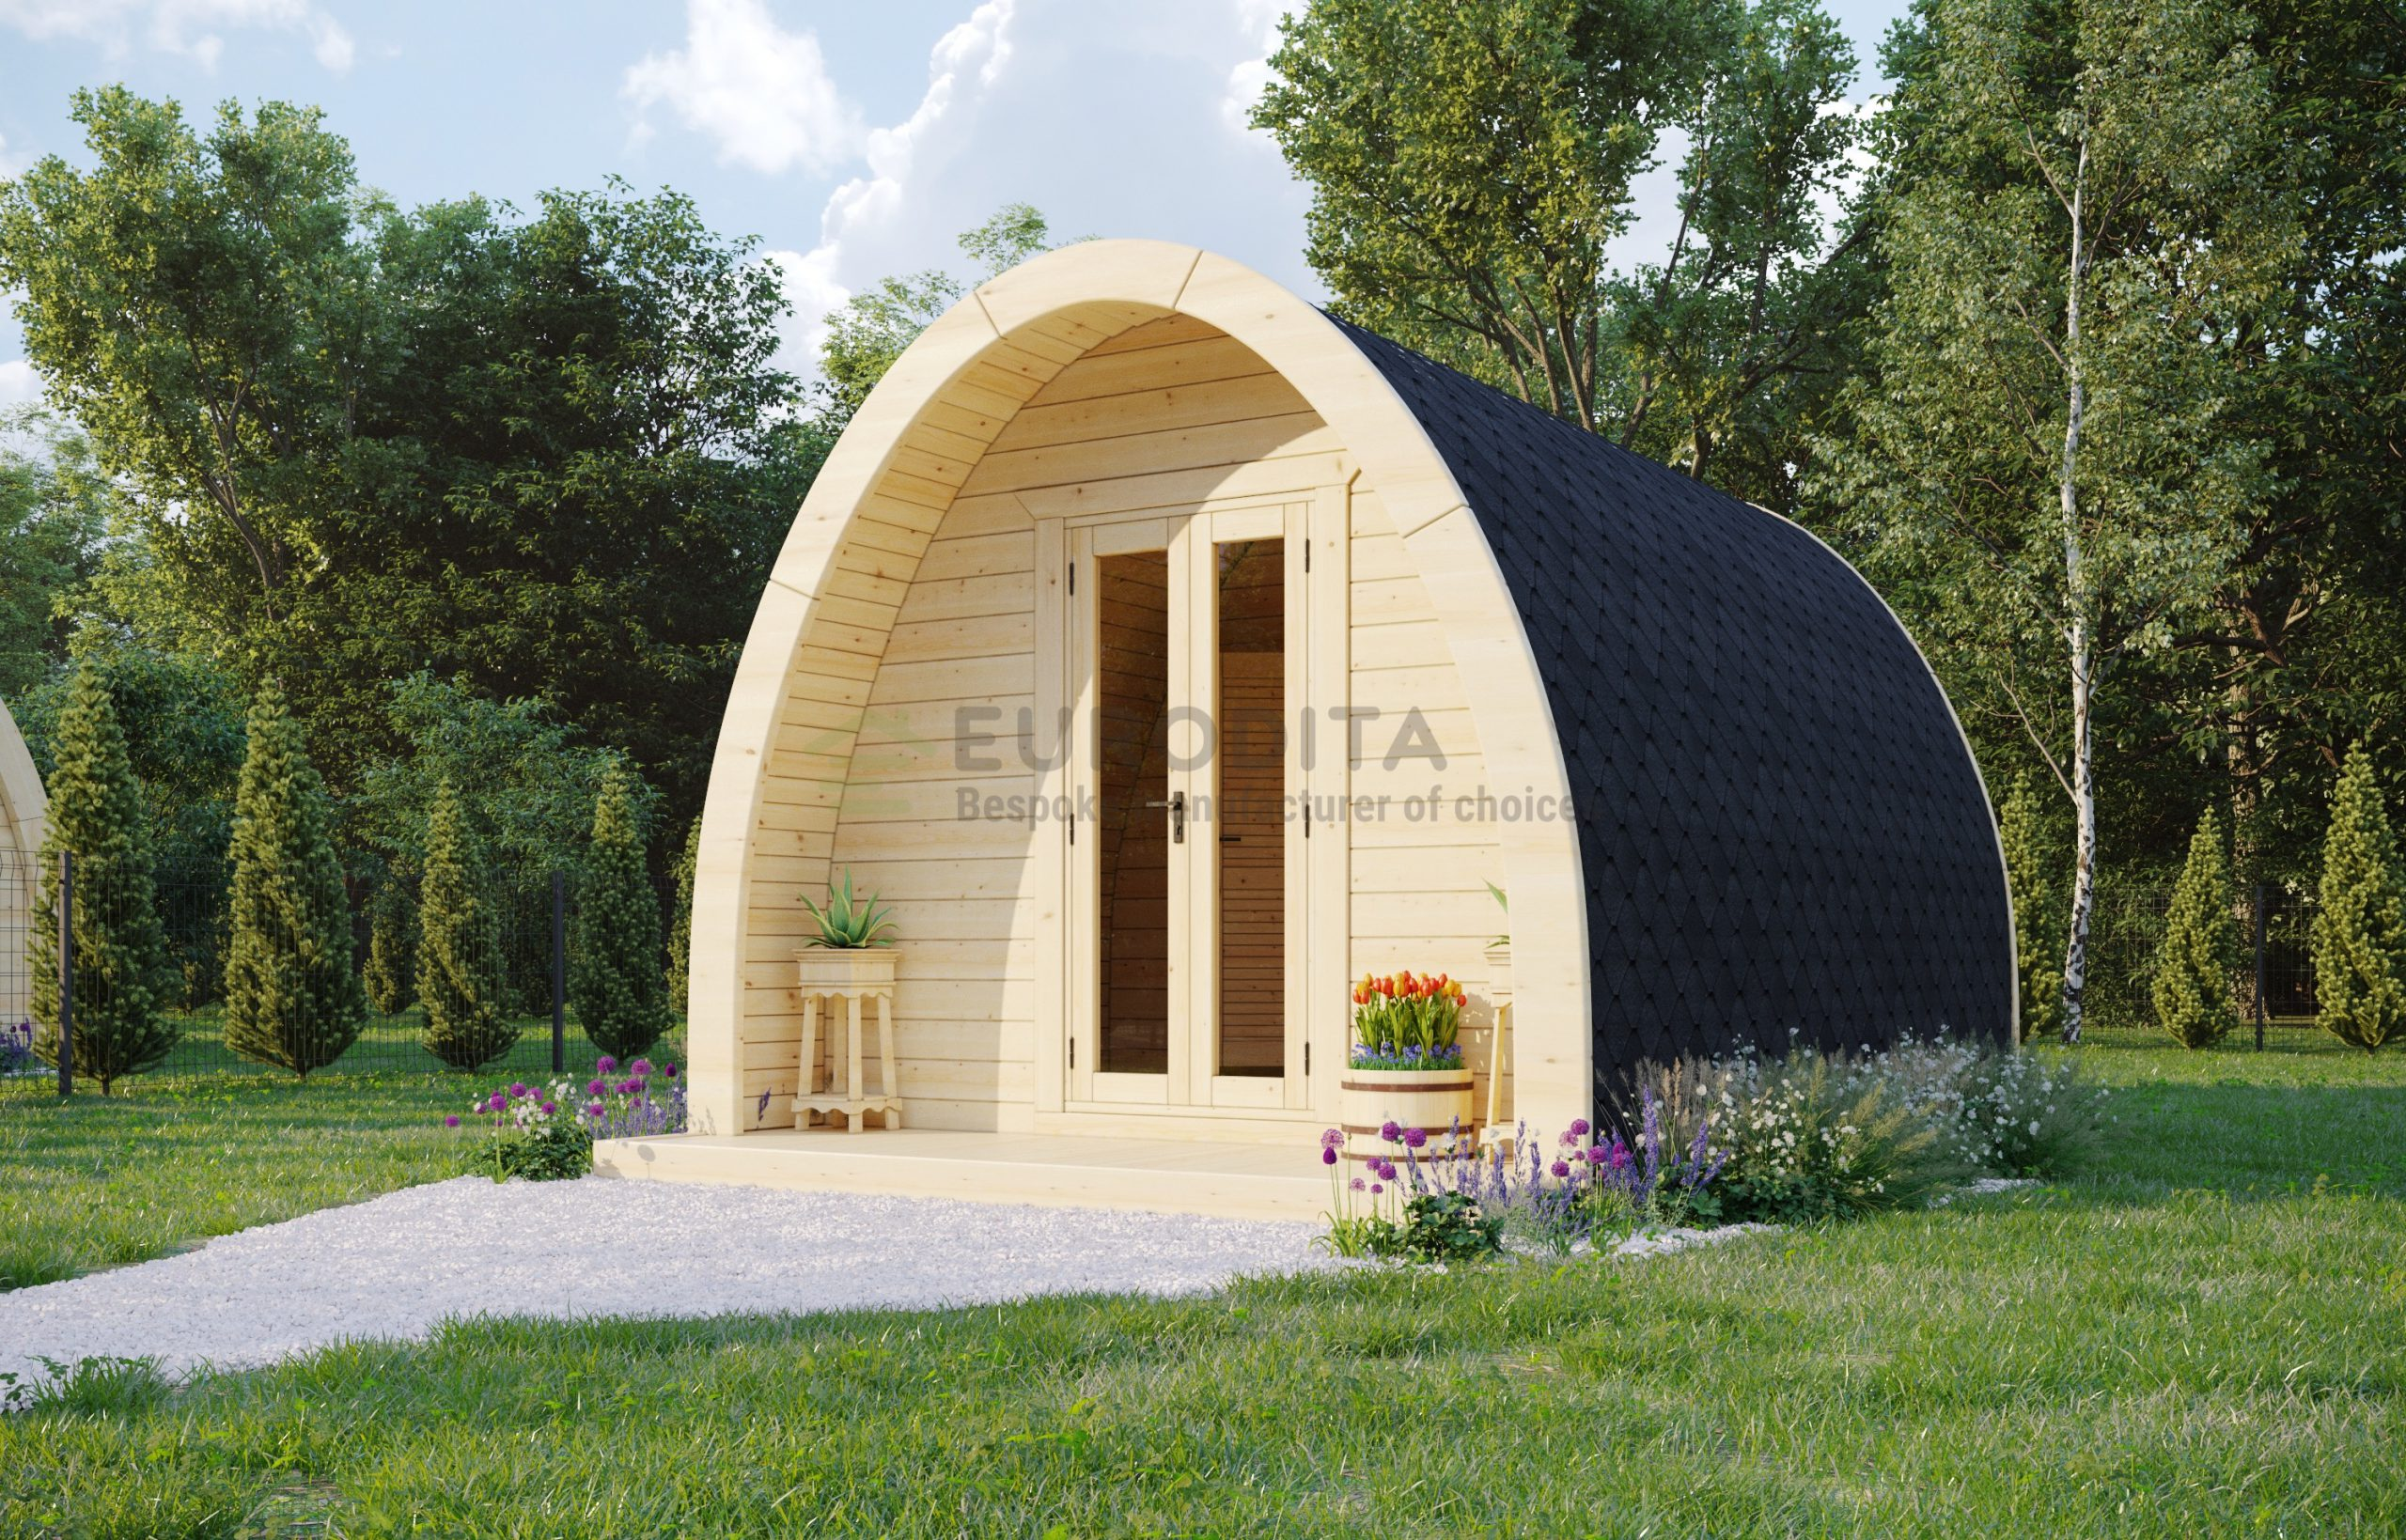 Insulated Camping Pod [3.25×4.8m]